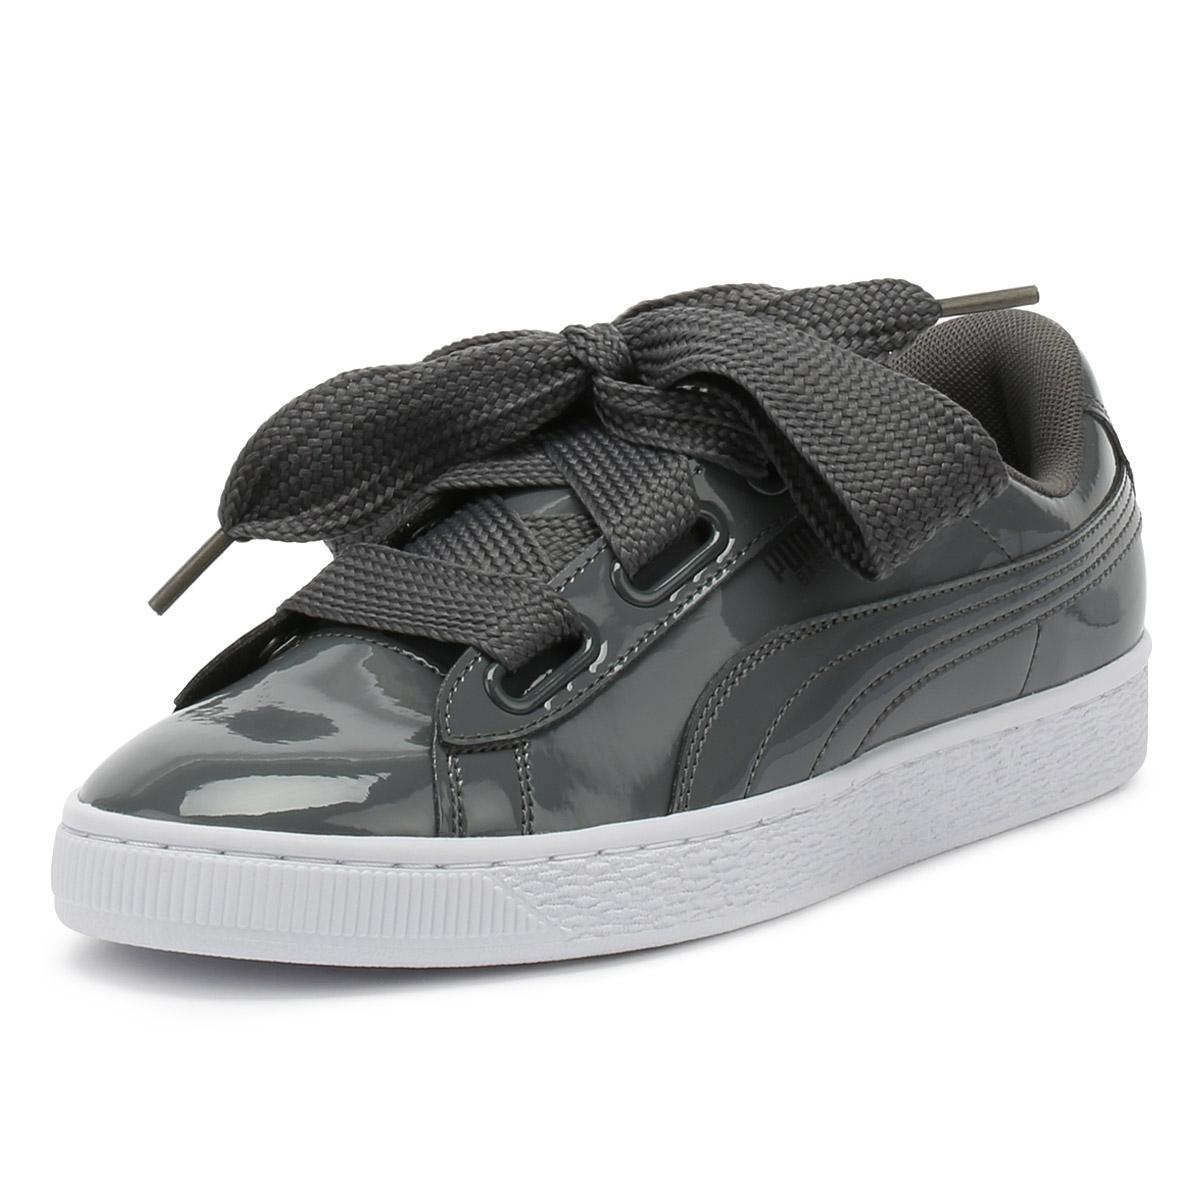 23a2b75a5c8f ... Basket Heart Patent Trainers Women s Shoes (trainers). View fullscreen